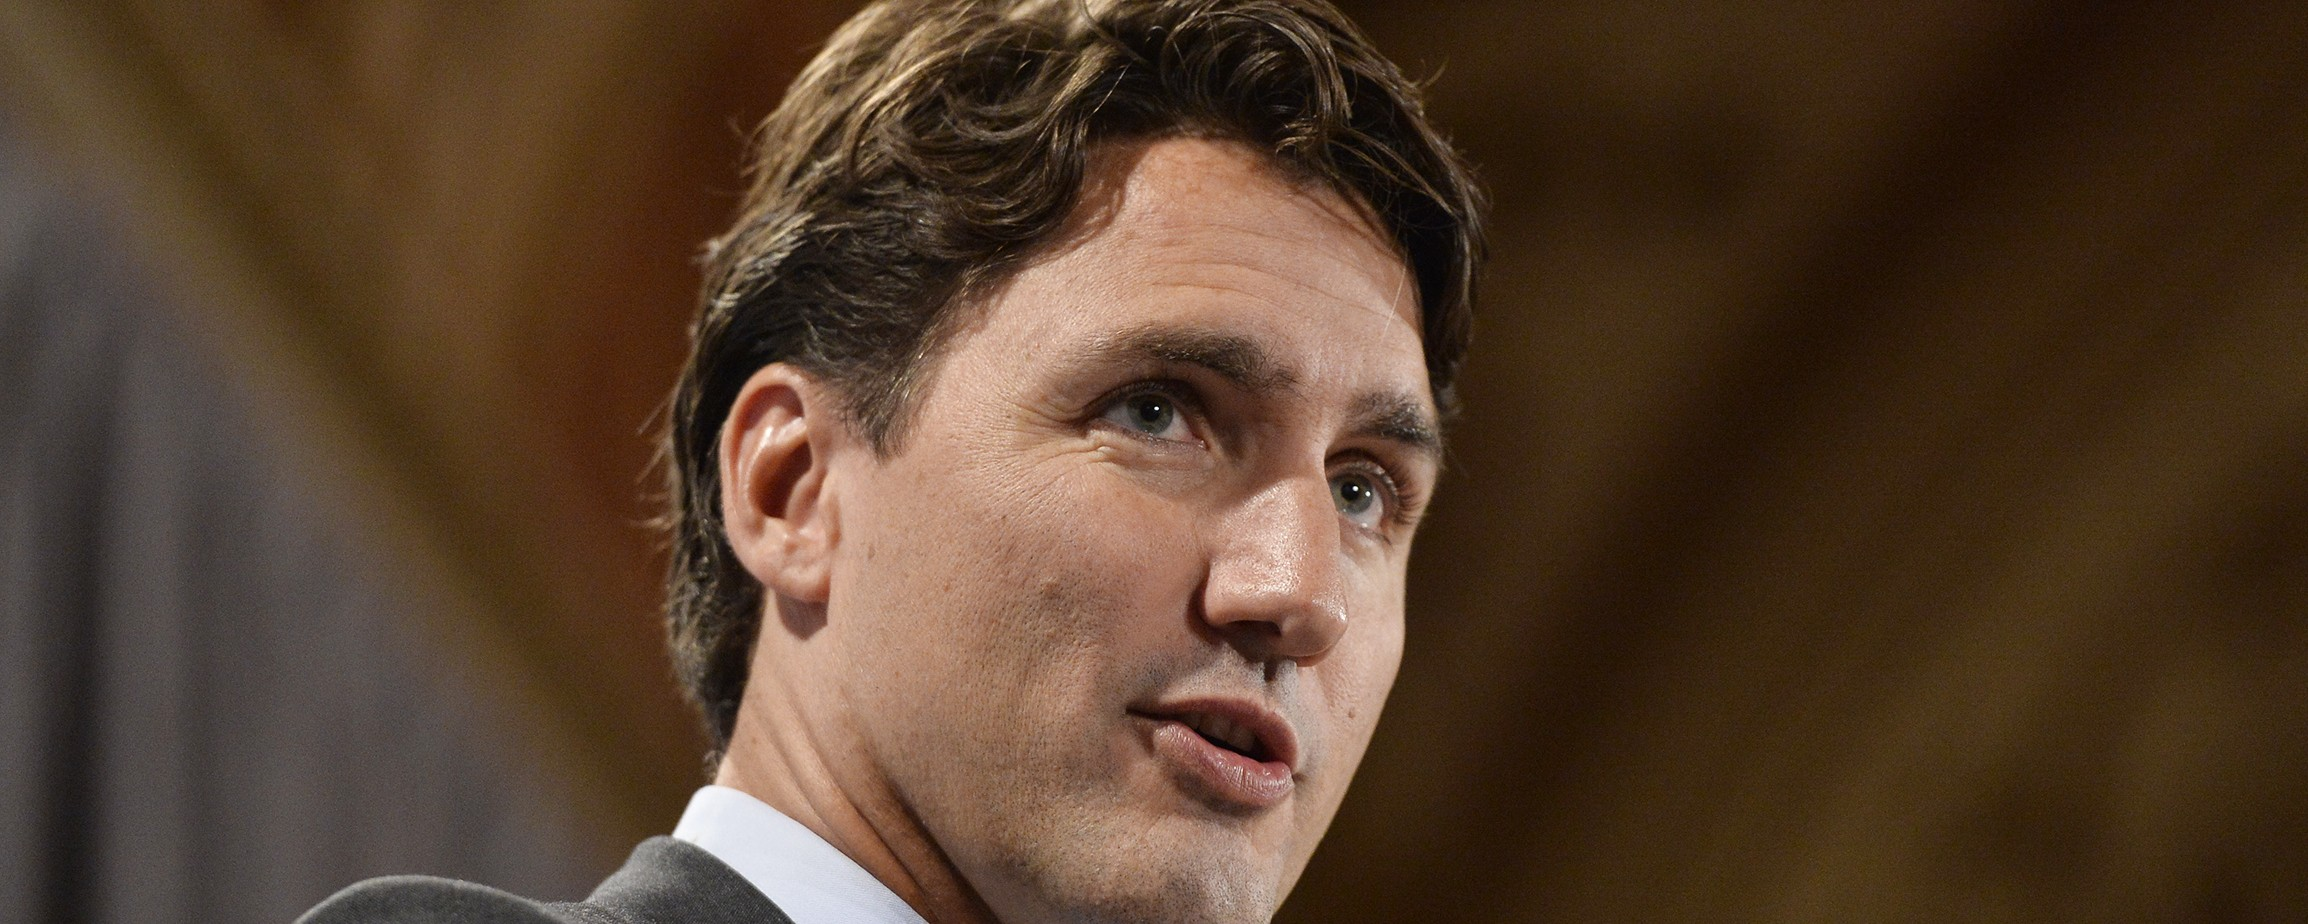 Canada's Liberal Leader Is in a Hurry to Legalize Weed